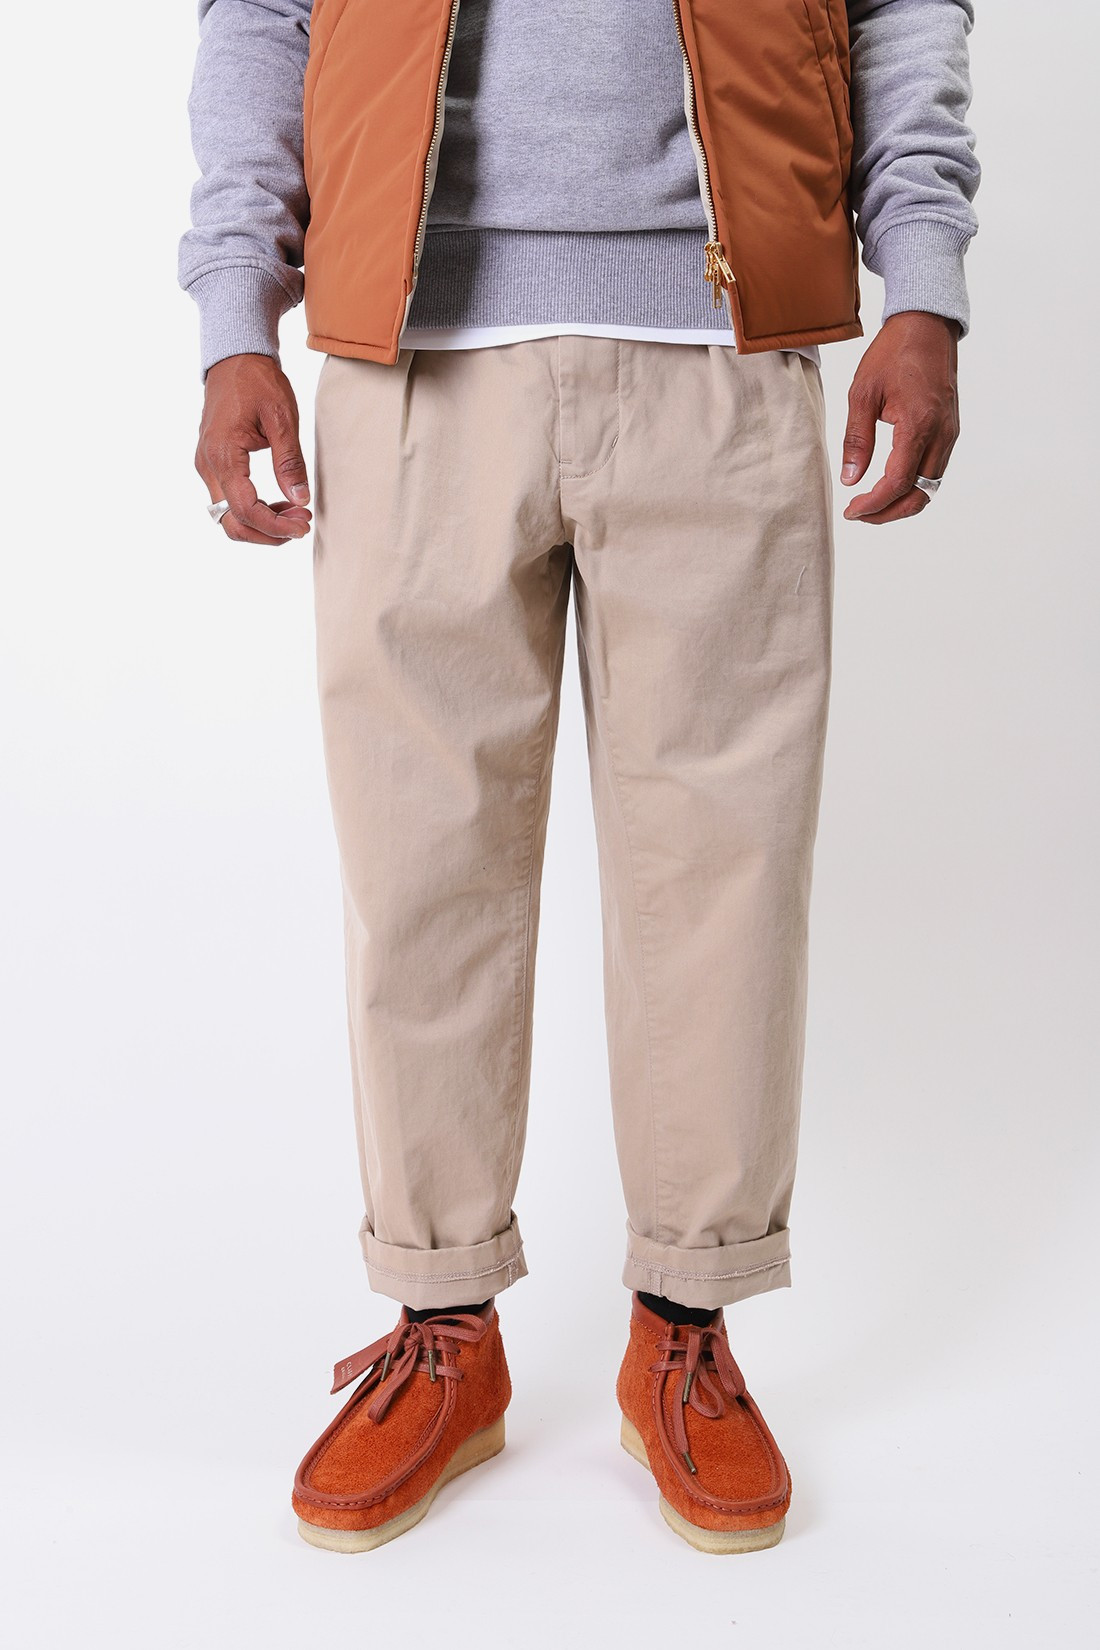 BEAMS PLUS / 2pleats twill pant Khaki